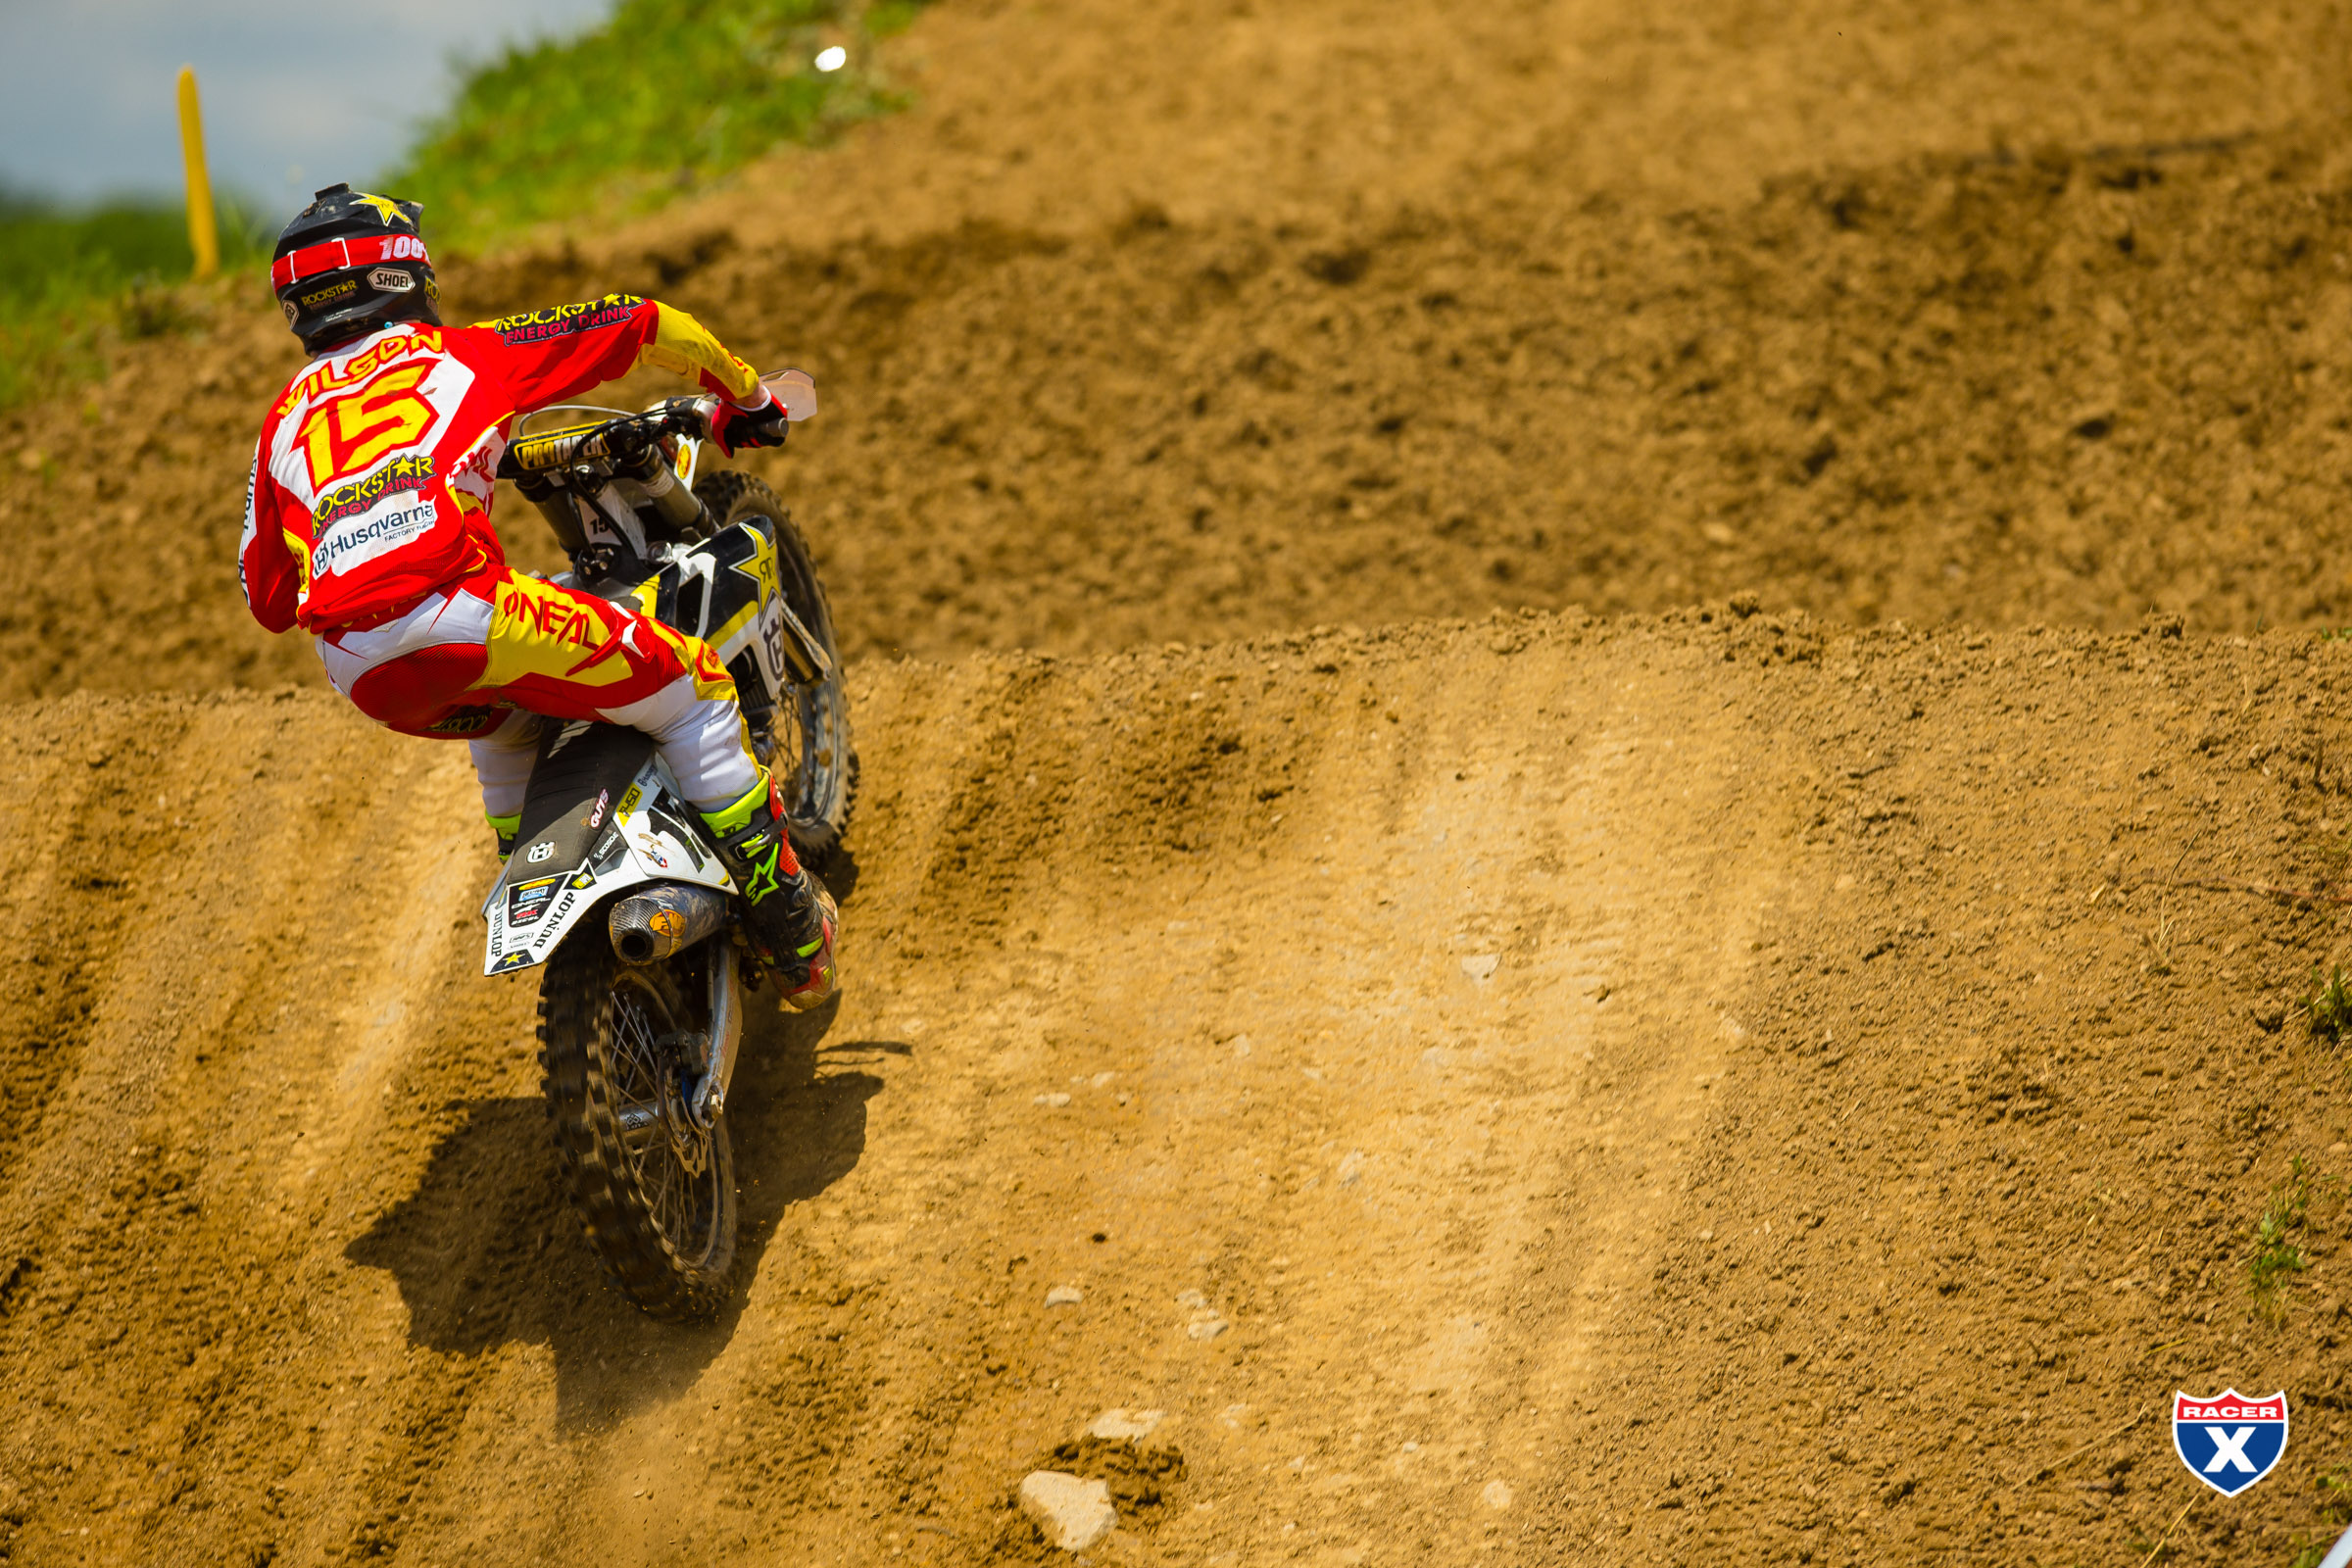 Wilson_MX17_HighPoint_JK_2151